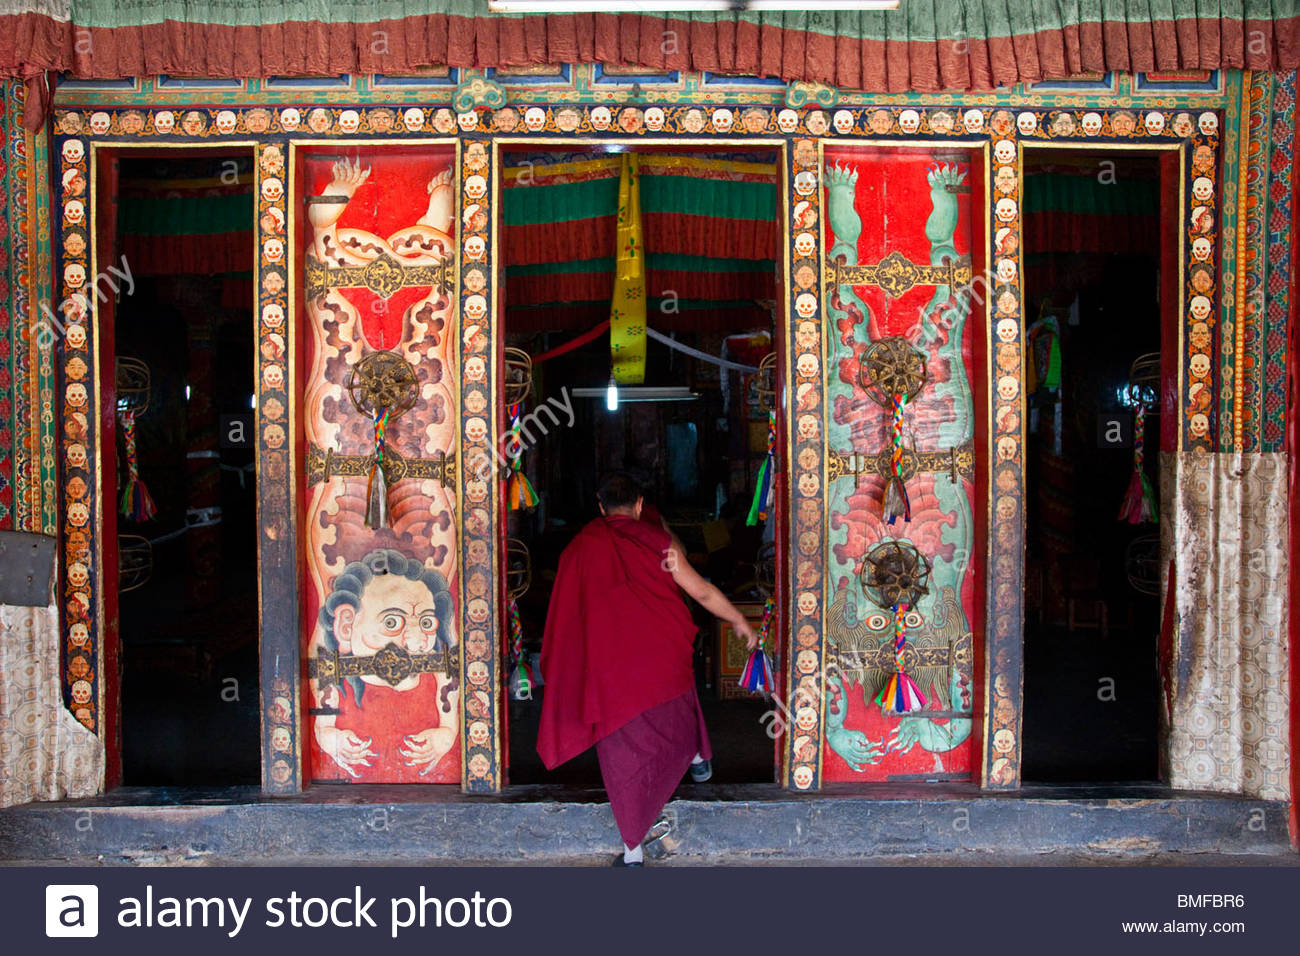 Museum of Antique Currency Beijing, Monk entering Nechung Monastery in Lhasa, Tibet Stock Photo ...